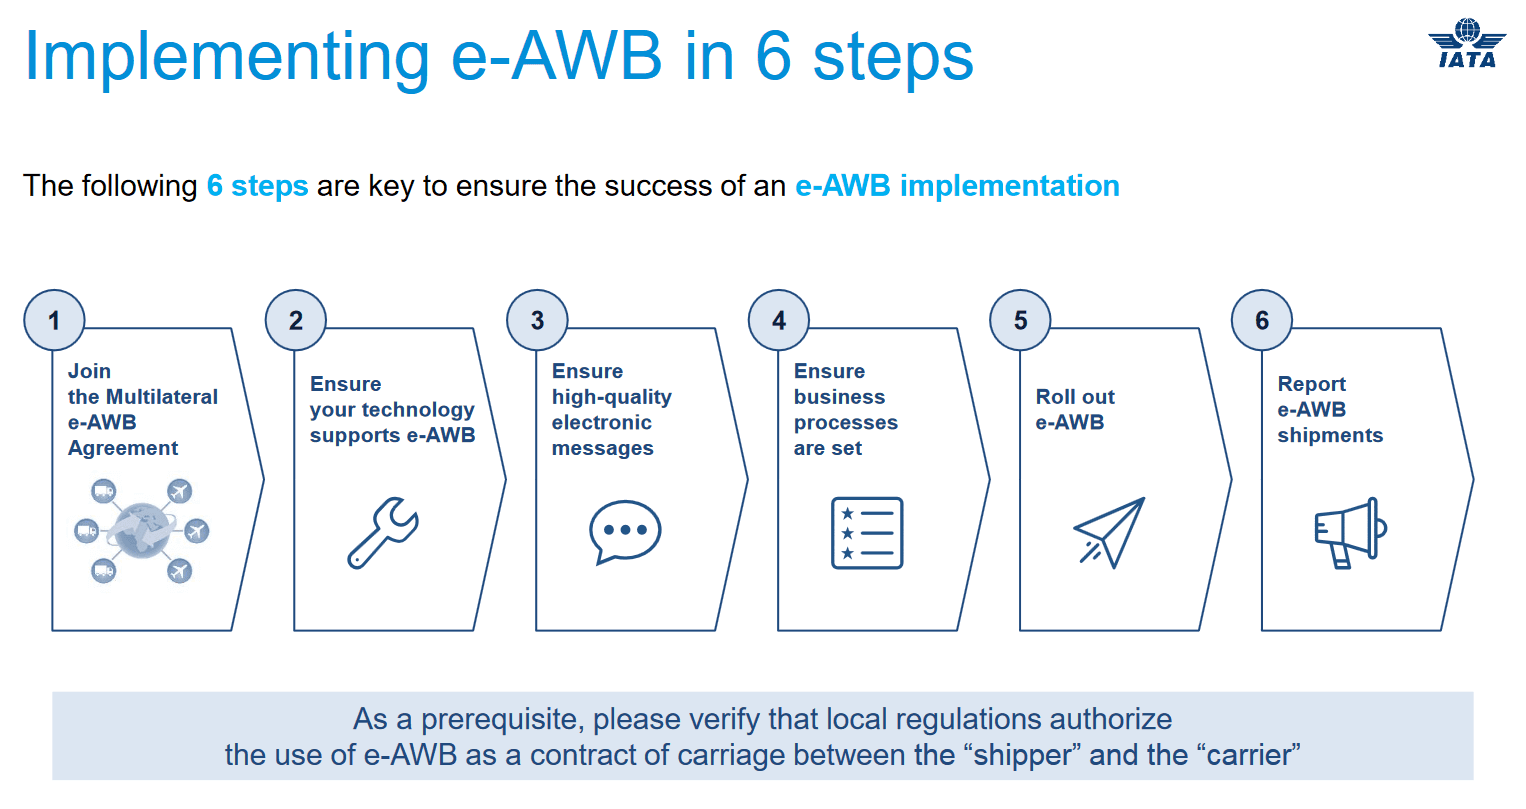 e-AWB implementation